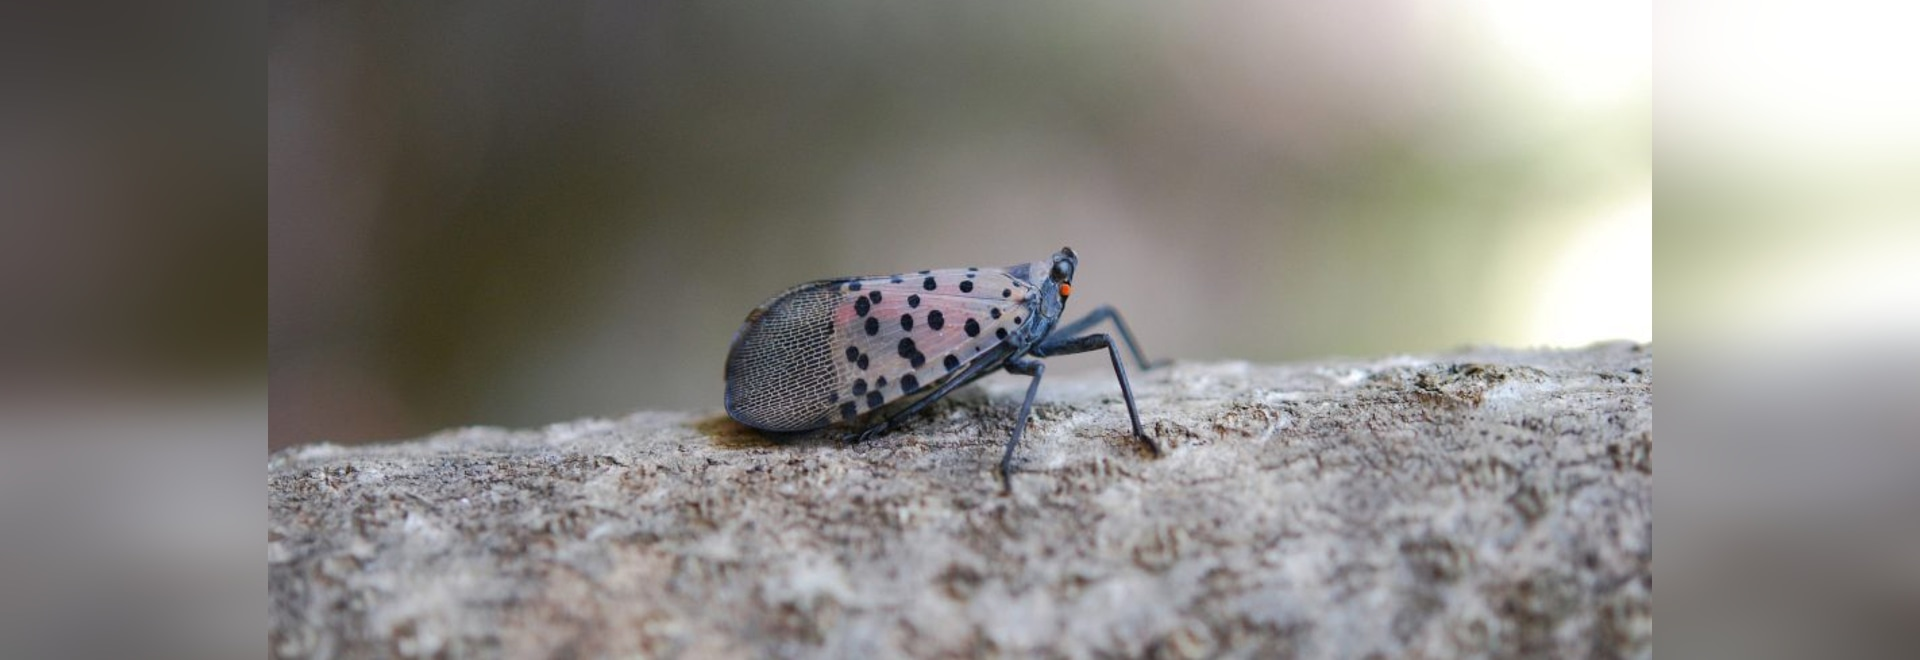 Spotted Lanternfly by U.S. Department of Agriculture (Photo courtesy of Bugwood) [CC BY-SA 3.0